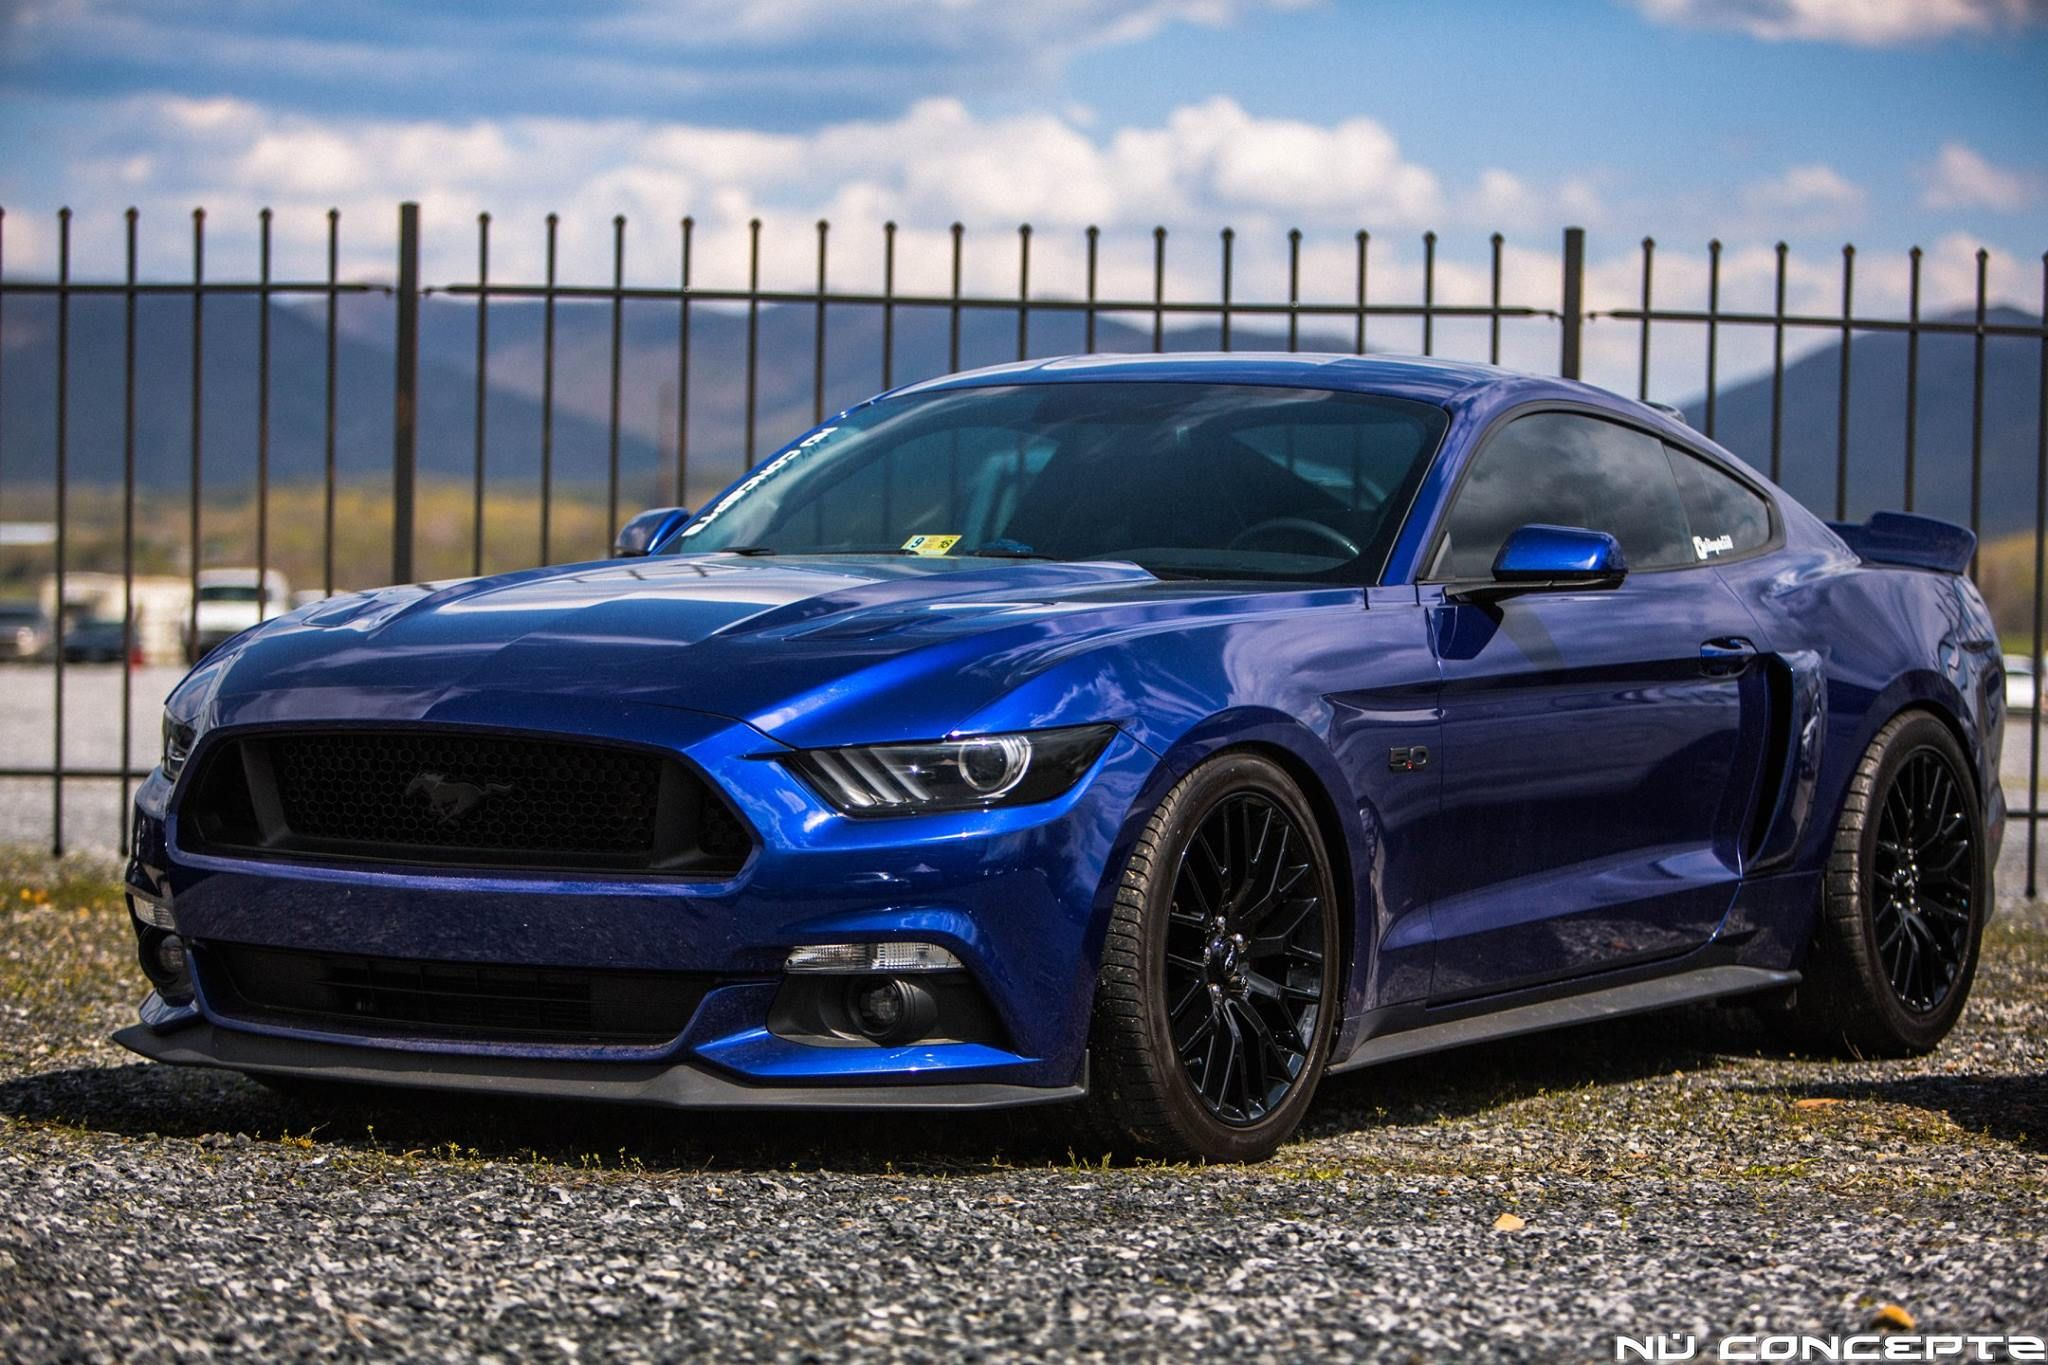 Deep Impact Blue S550 Mustang Thread Page 119 2017 Forum Gt Gt350 Gt500 Mach 1 Ecoboost Mustang6g